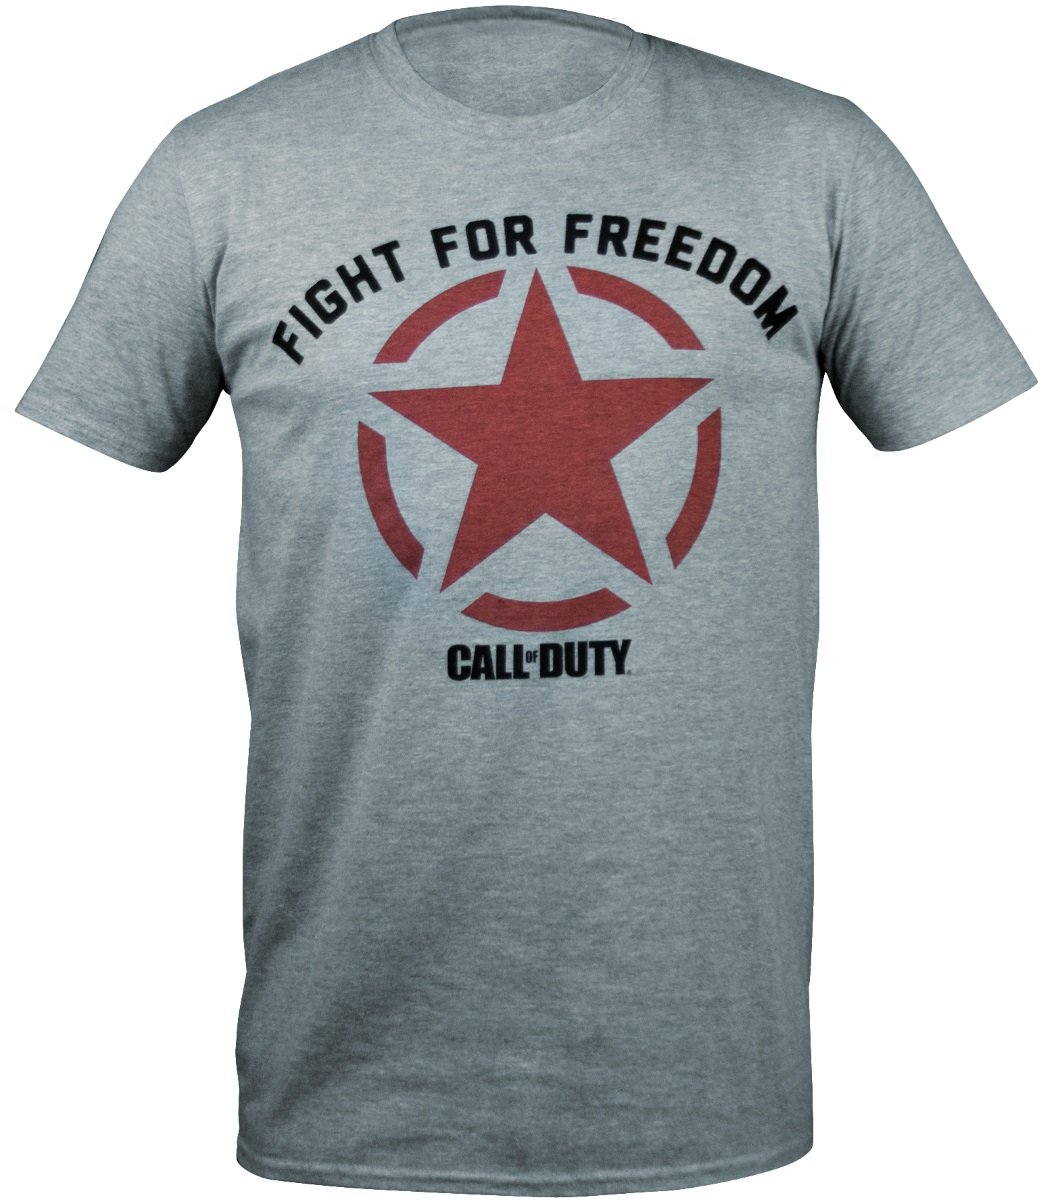 Футболка Call Of Duty WWII: Fight For Freedom Star (серая)